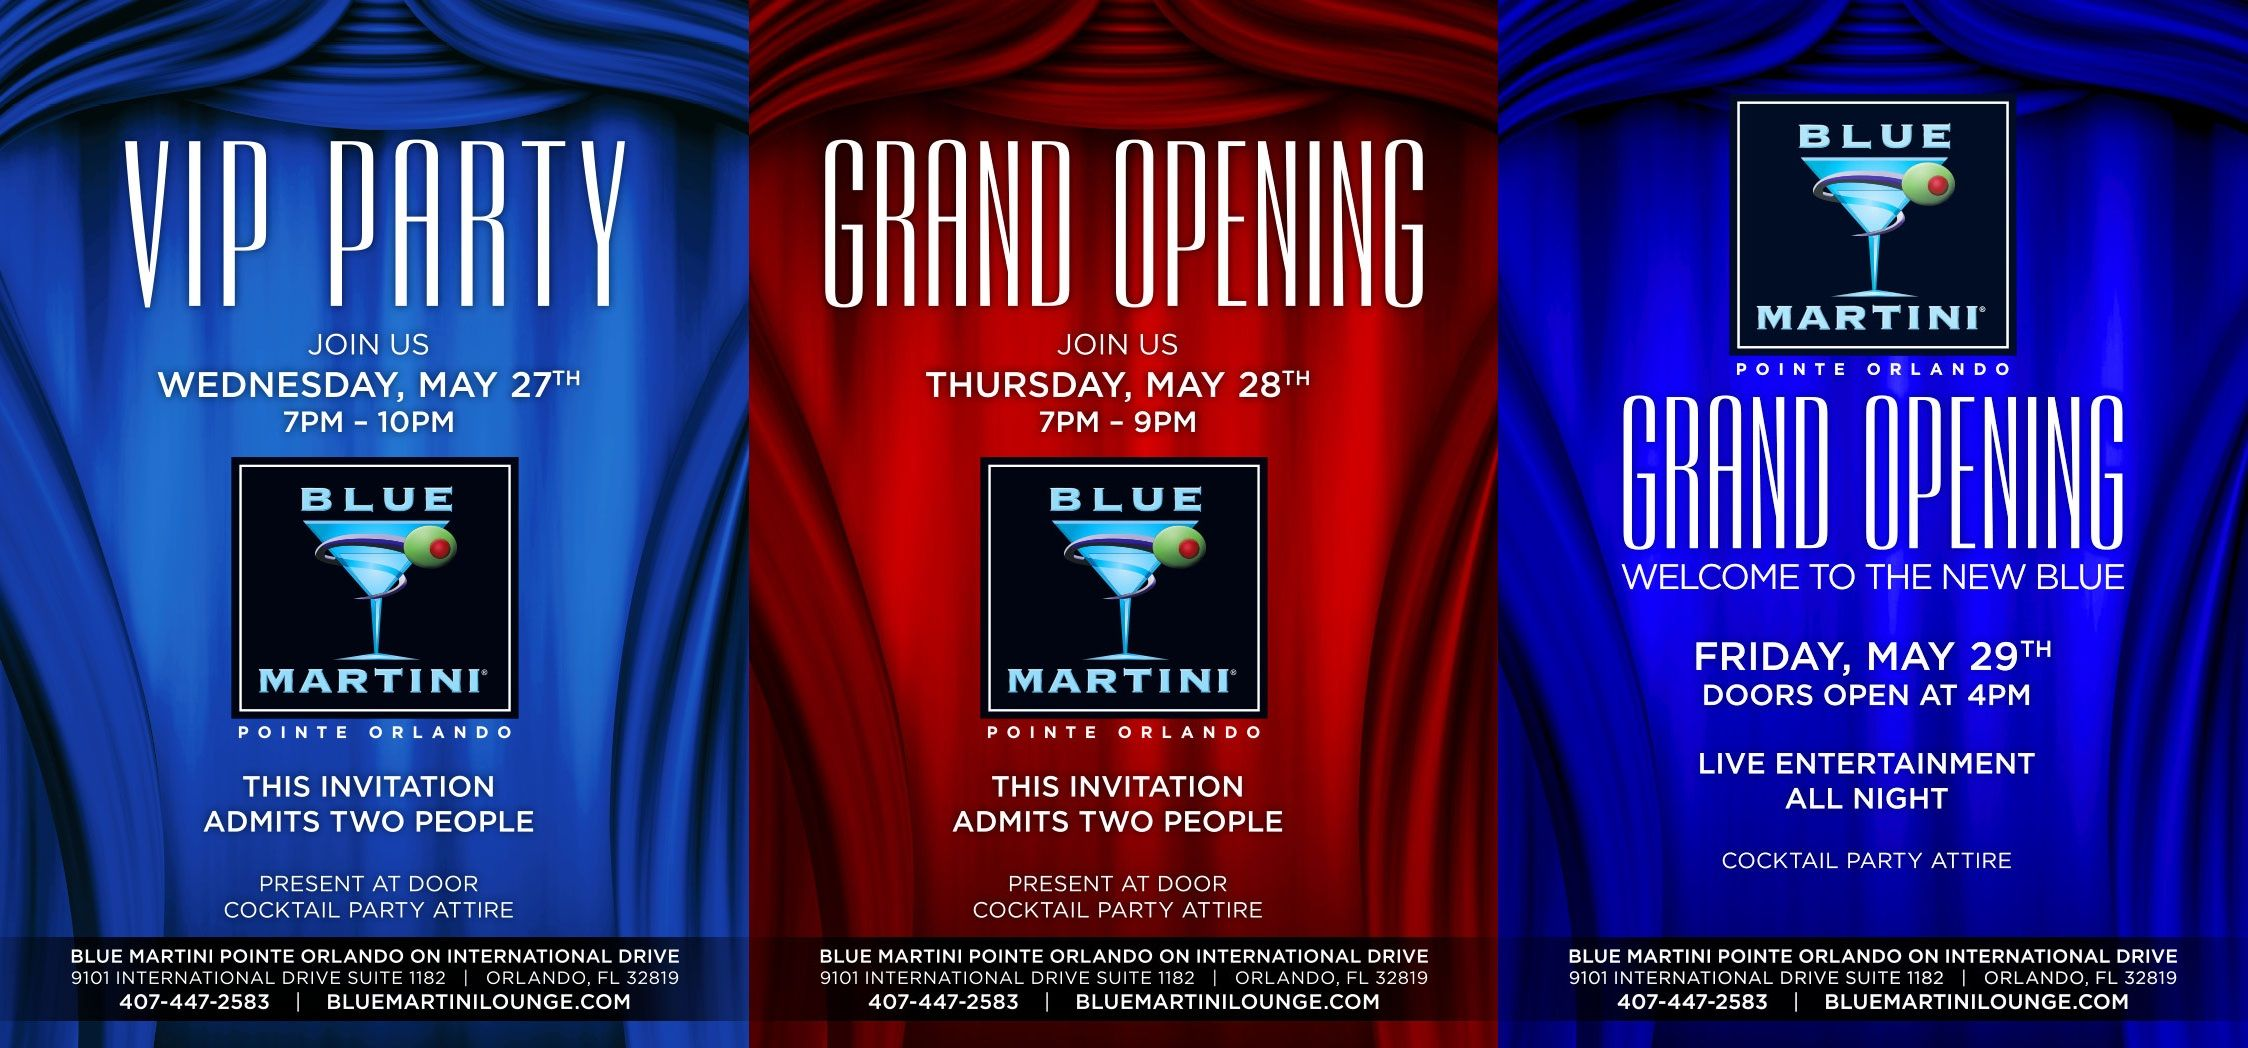 Blue Martini Pointe Orlando Grand Opening On 29th May 2015 Door Opens At 4pm Happy Hour 3pm 7pm We Are Known For Of Blue Martini Best Happy Hour Martini